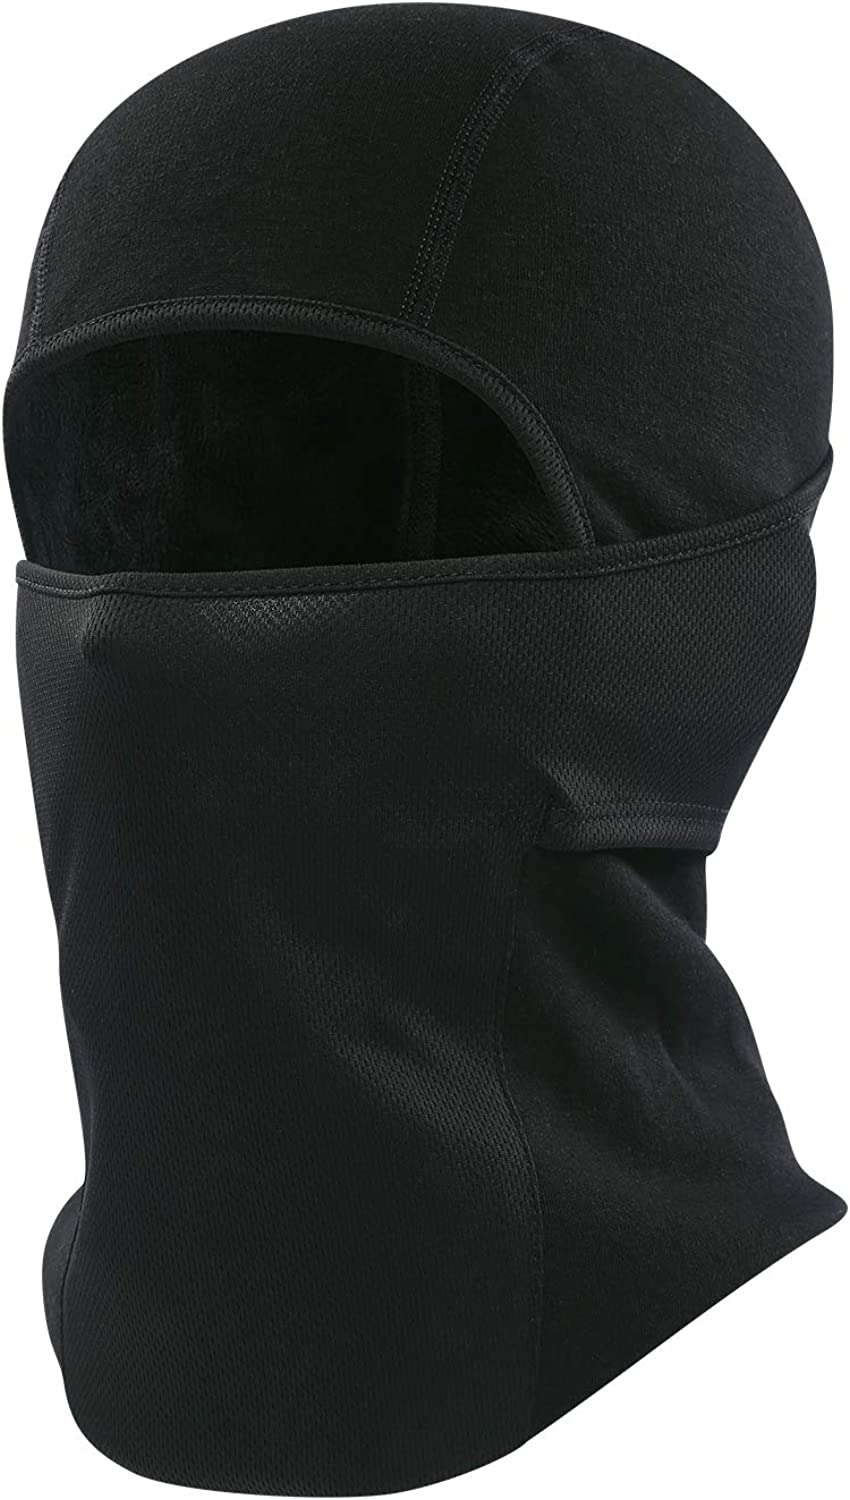 Balaclava Ski Mask- Windproof and Warmer Fleece Cold Weather Face Mask in Winter for Skiing Snowboarding Motorcycling